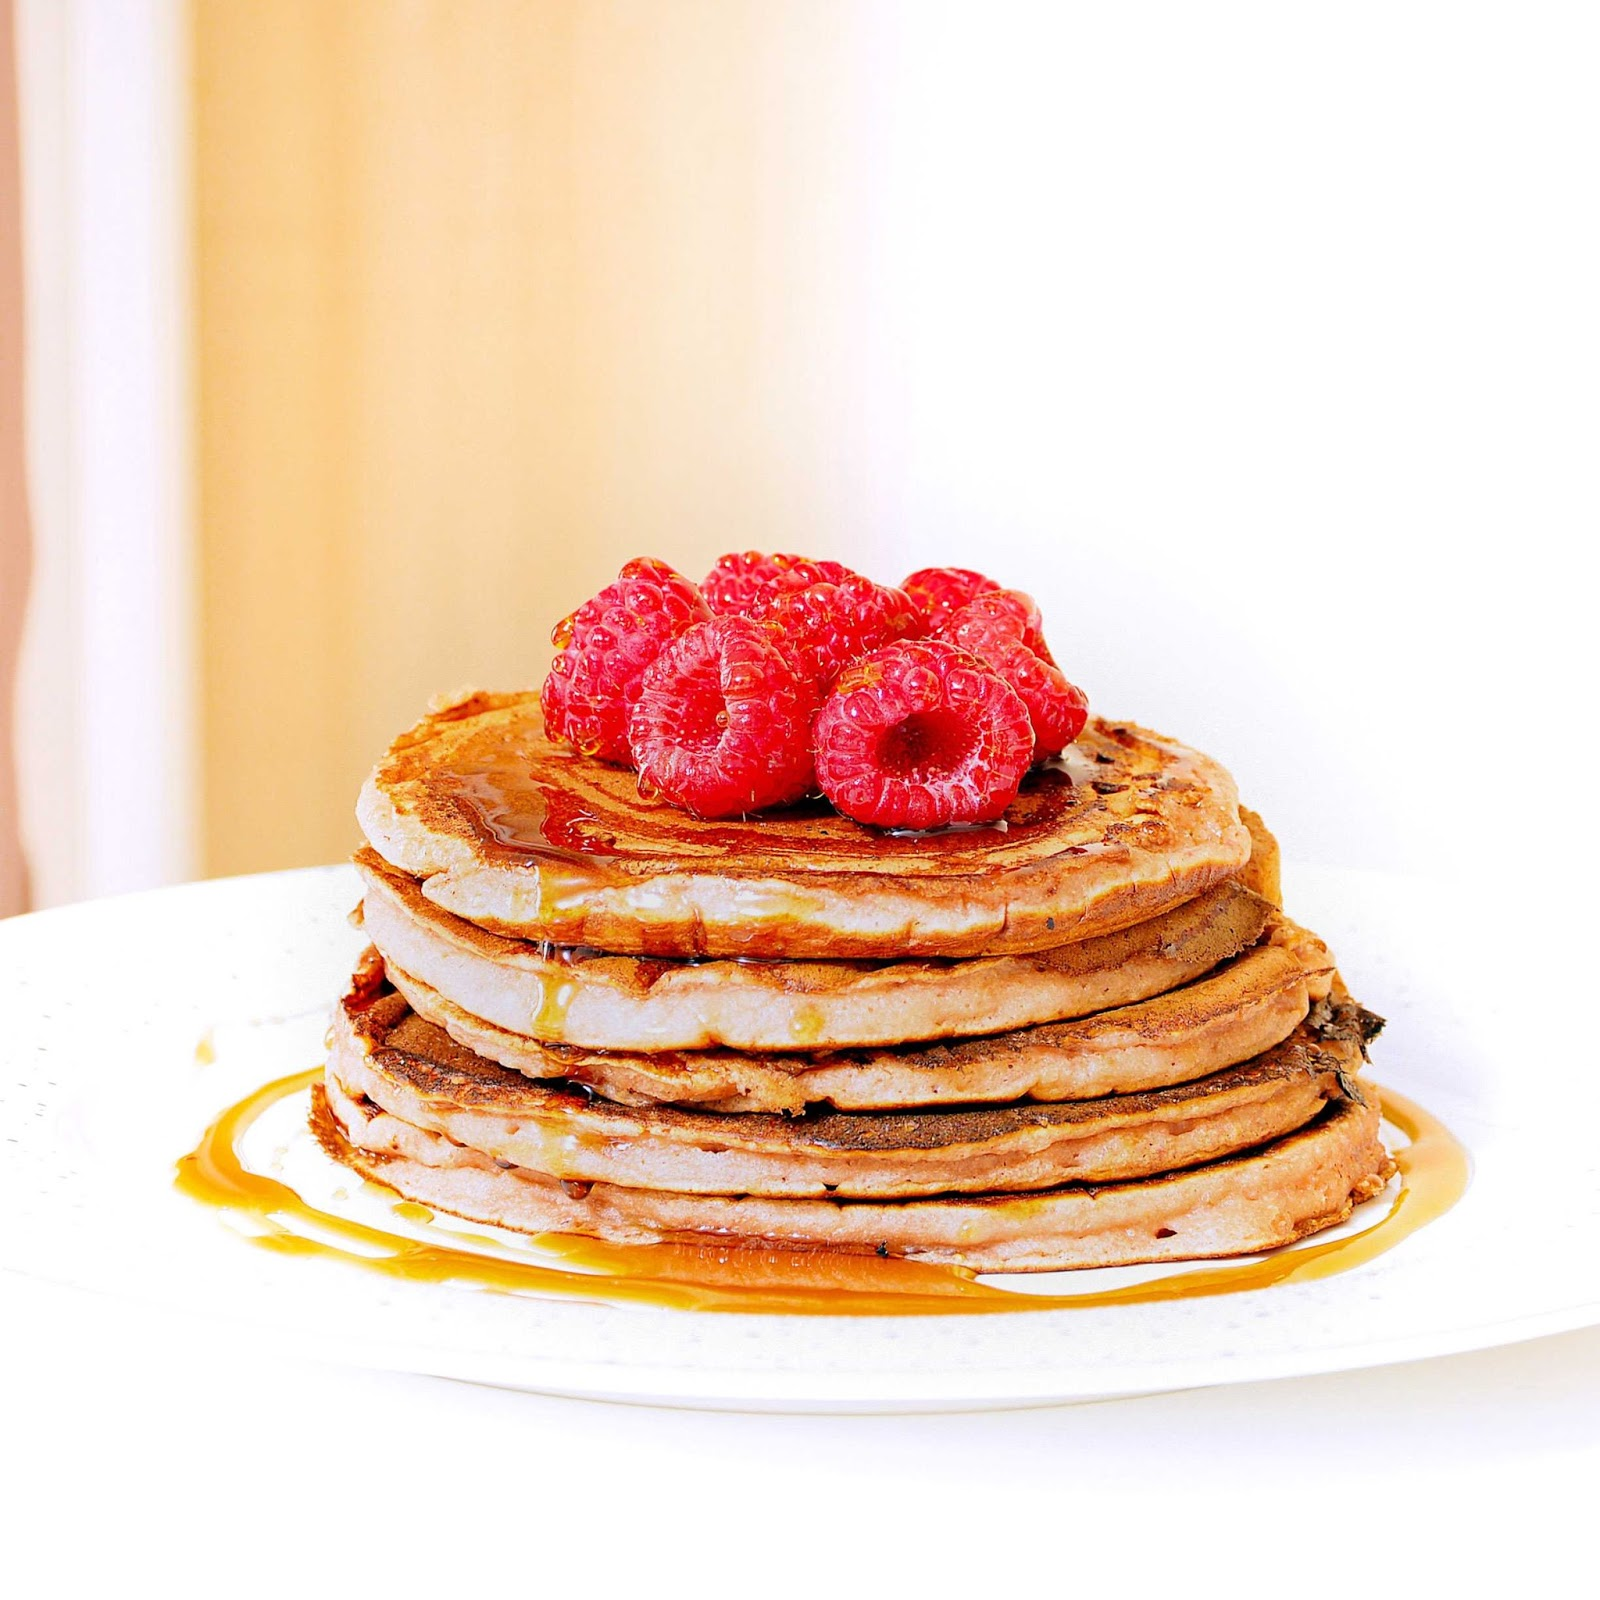 Pancakes in milk - simple but delicious delicacy